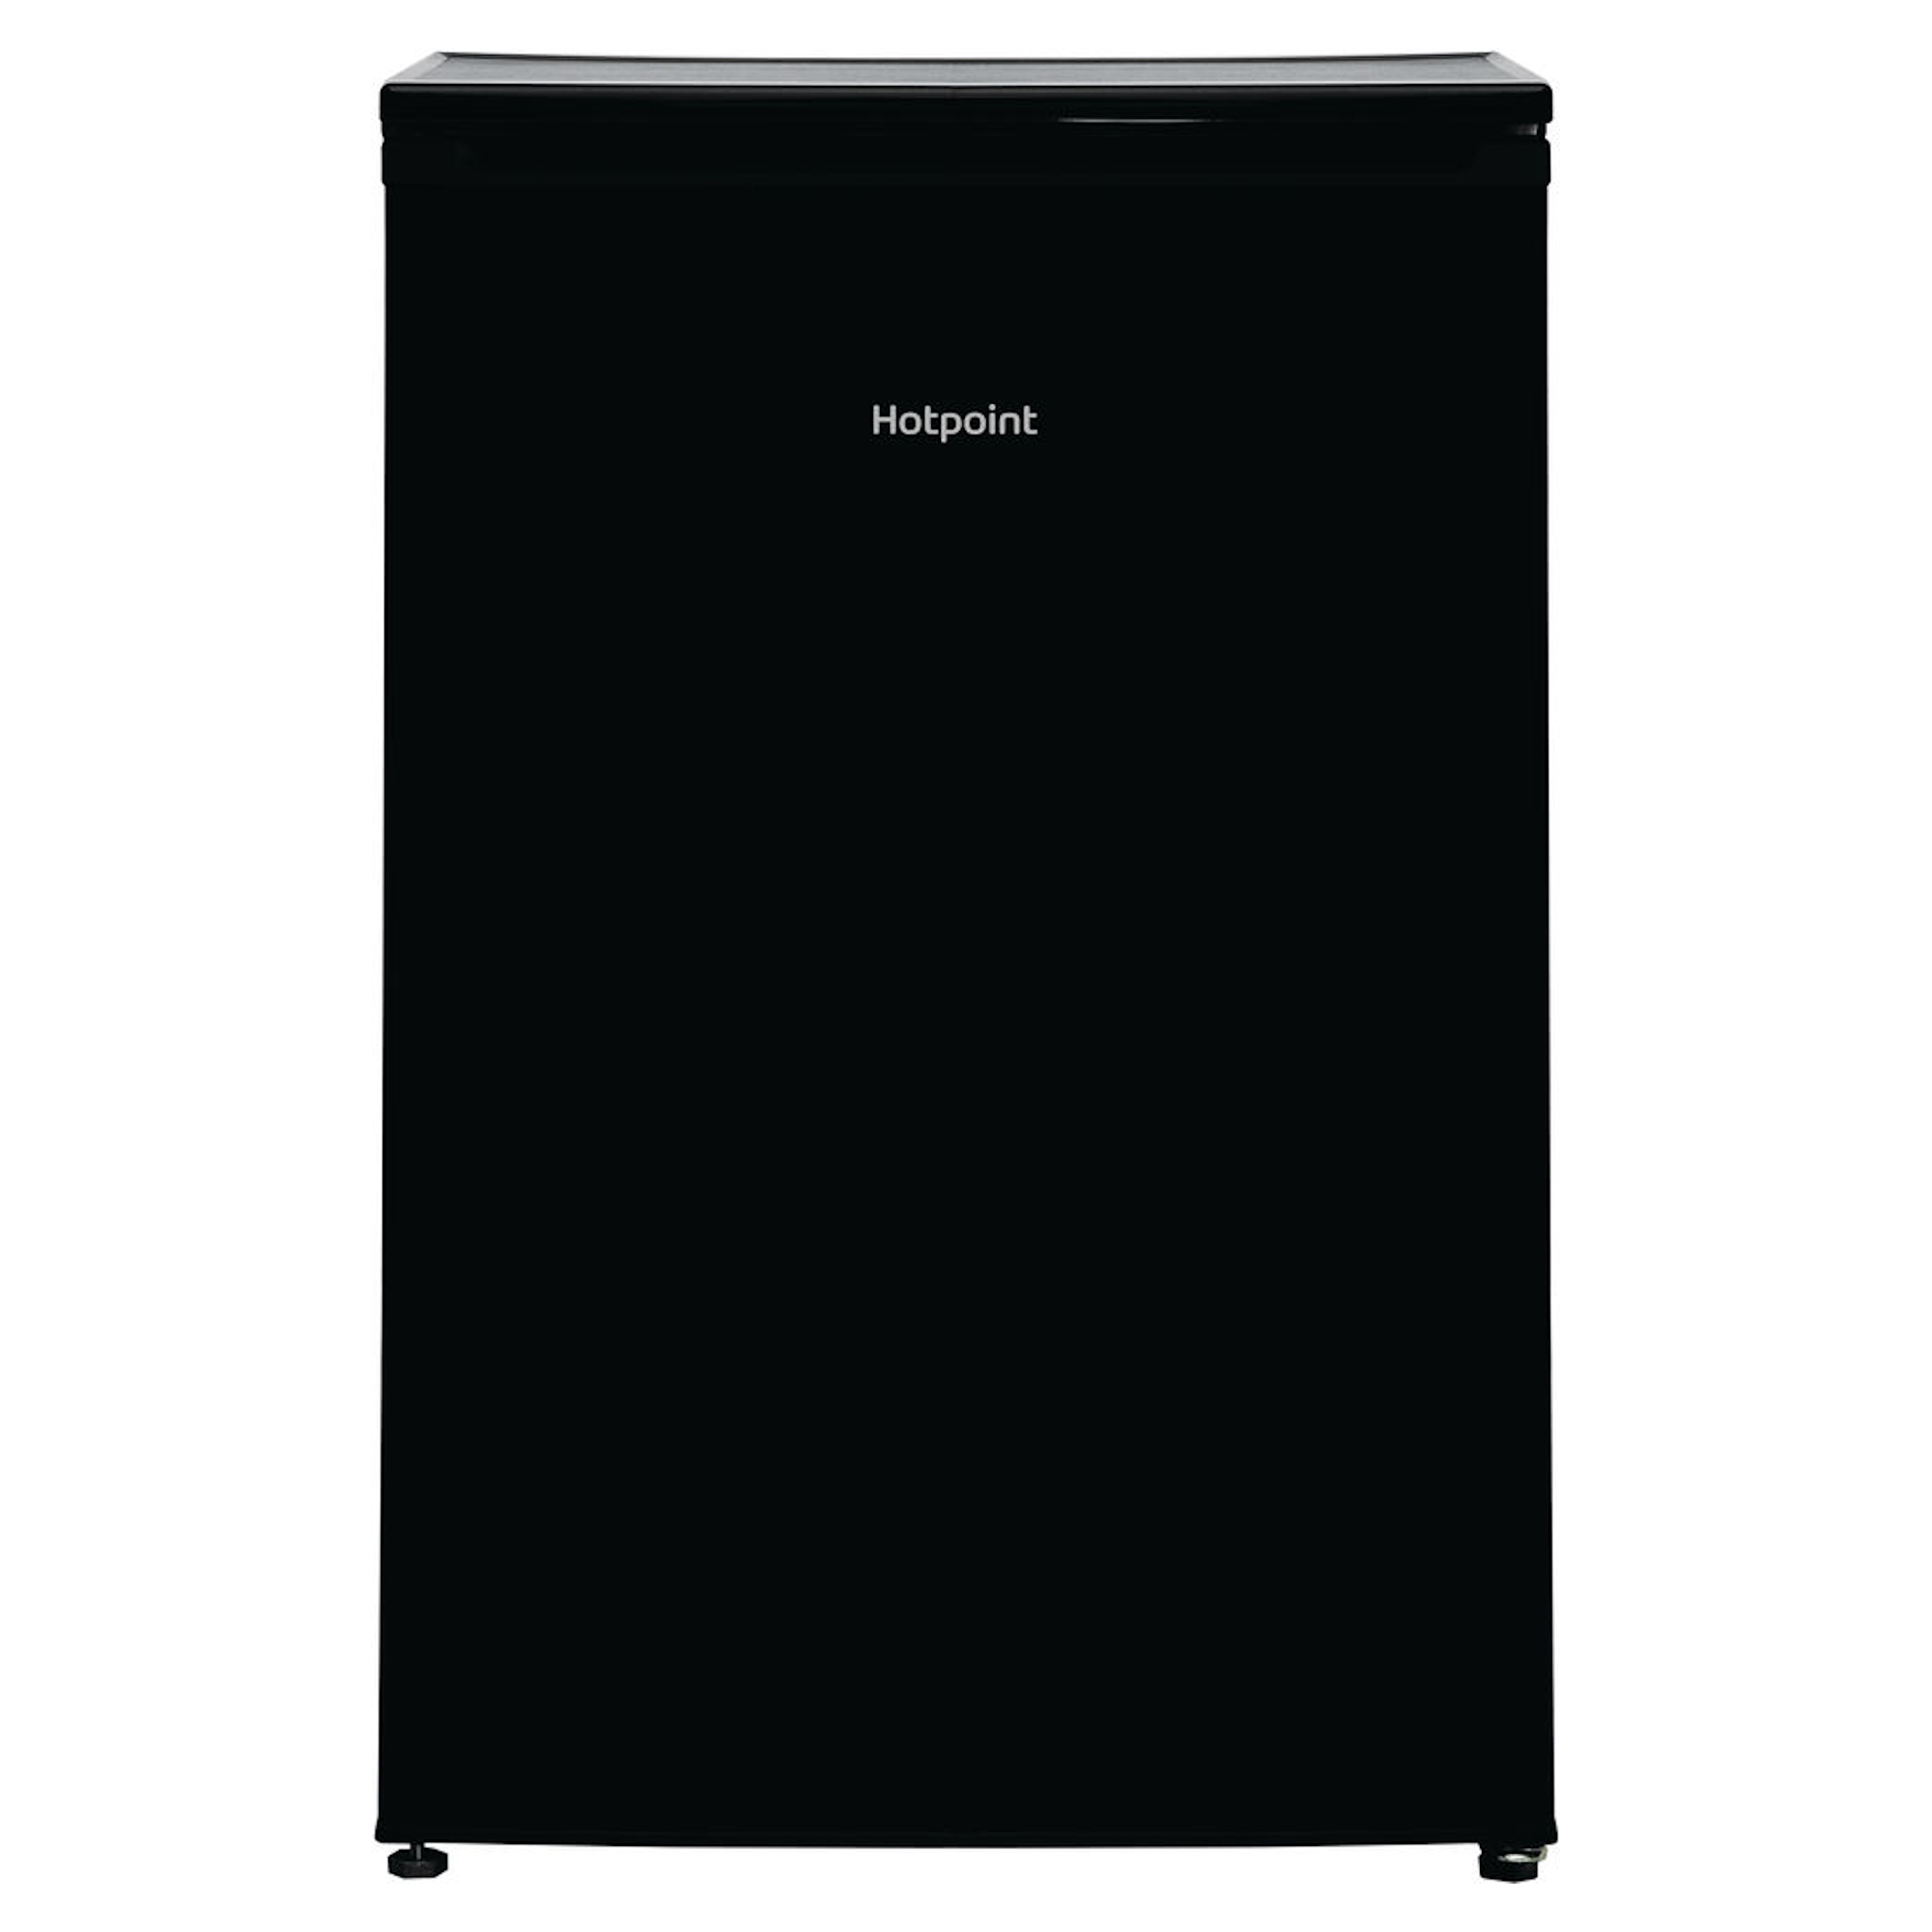 Hotpoint H55zm1110k 102l Under Counter Freezer A Energy